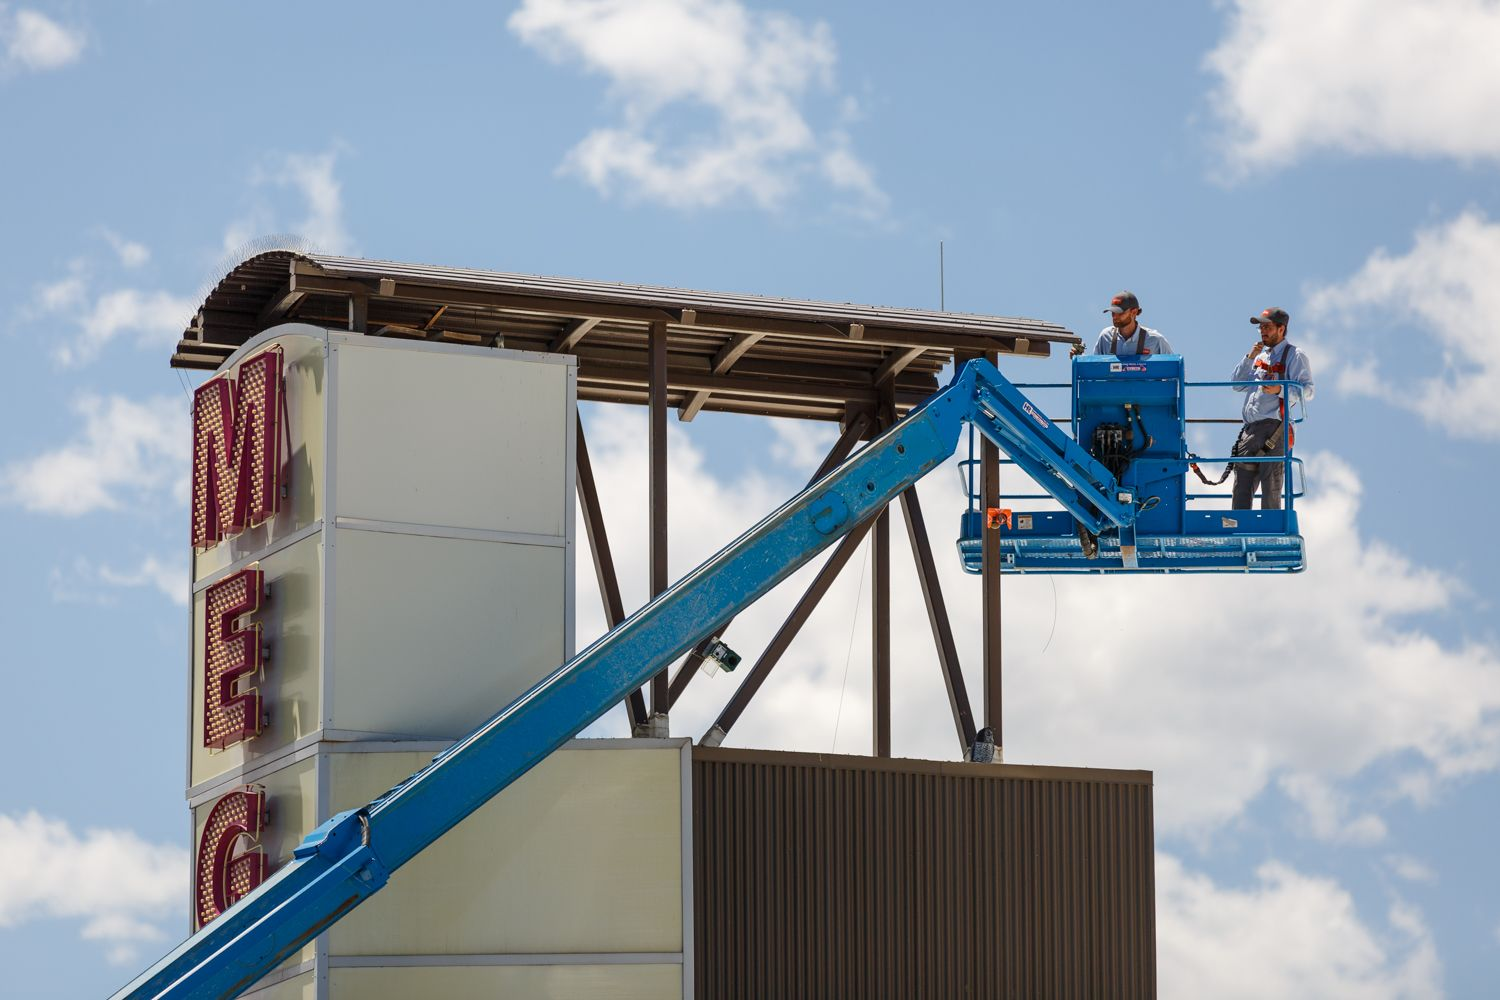 Thorn professionals in a blue lift